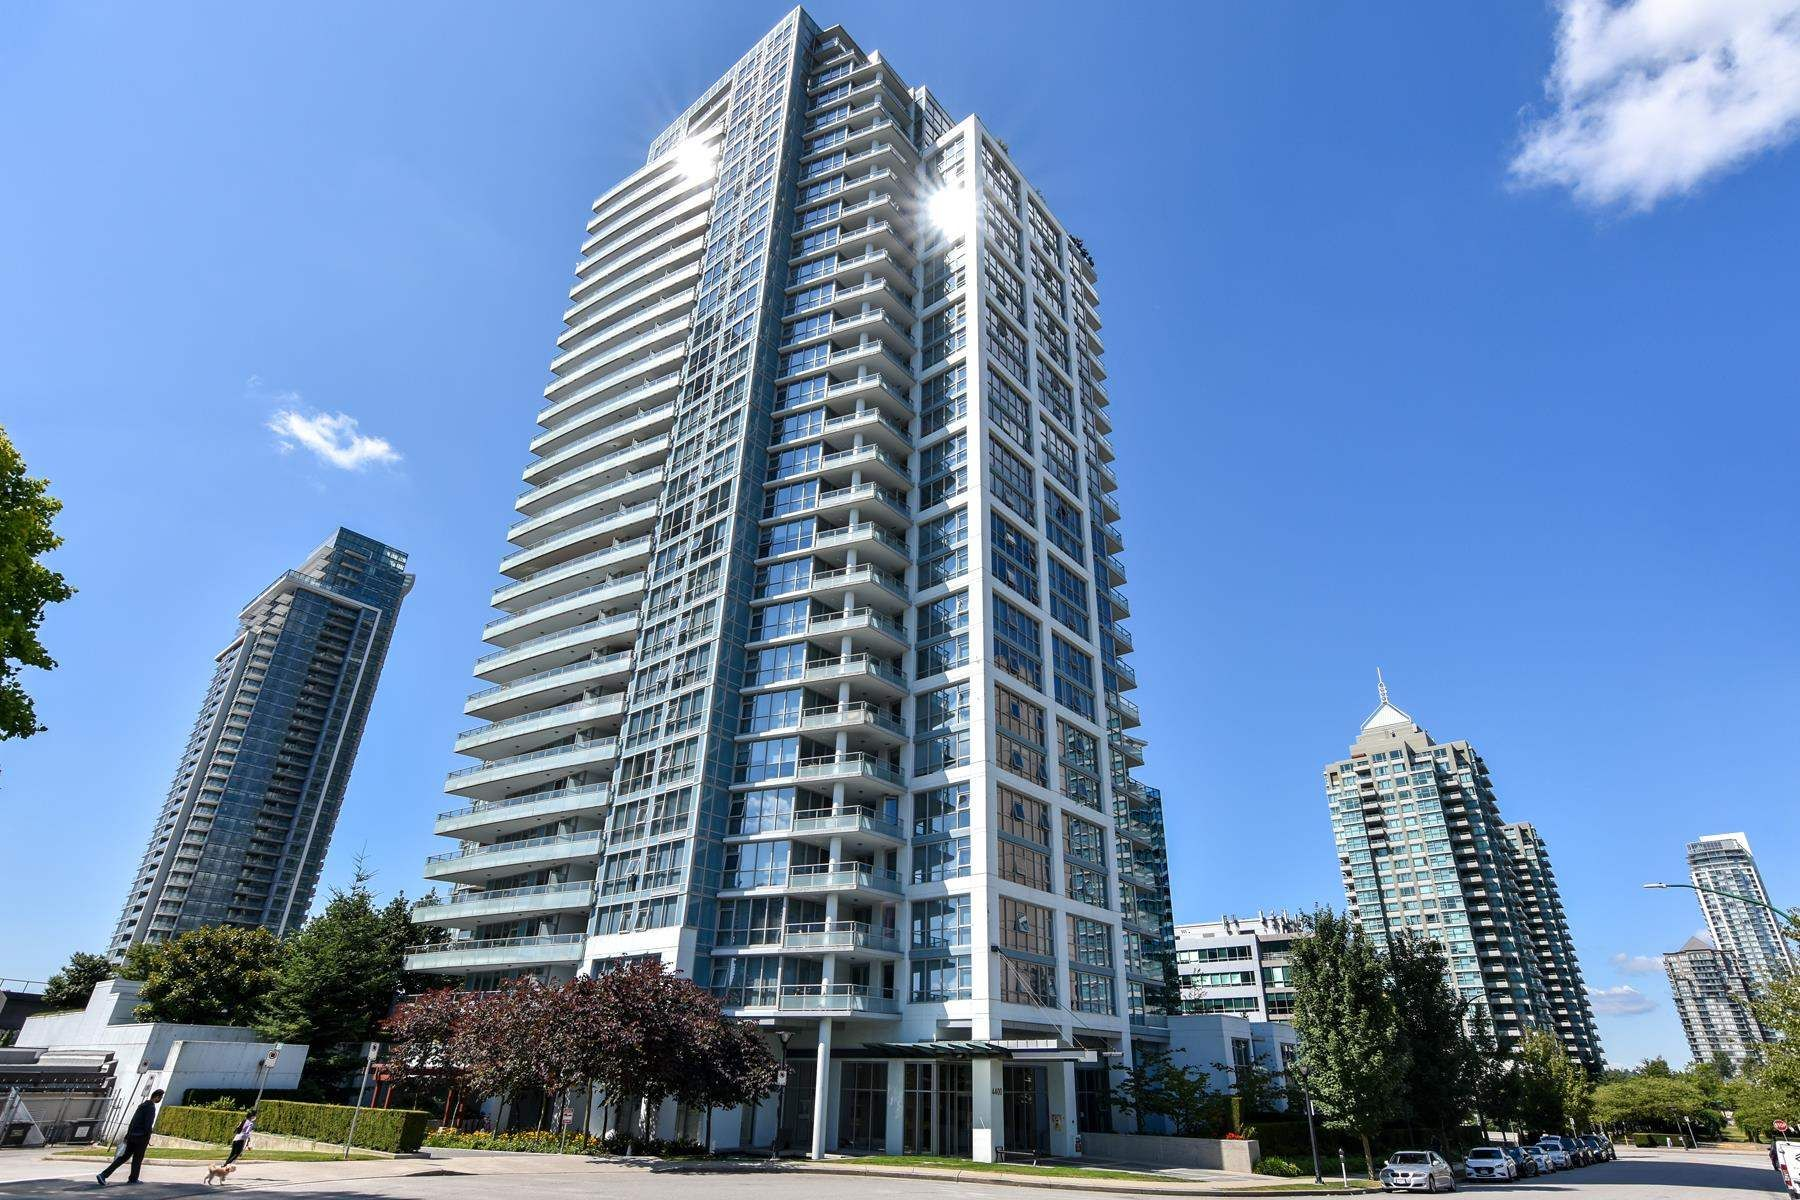 """Main Photo: 2001 4400 BUCHANAN Street in Burnaby: Brentwood Park Condo for sale in """"Motif"""" (Burnaby North)  : MLS®# R2604688"""